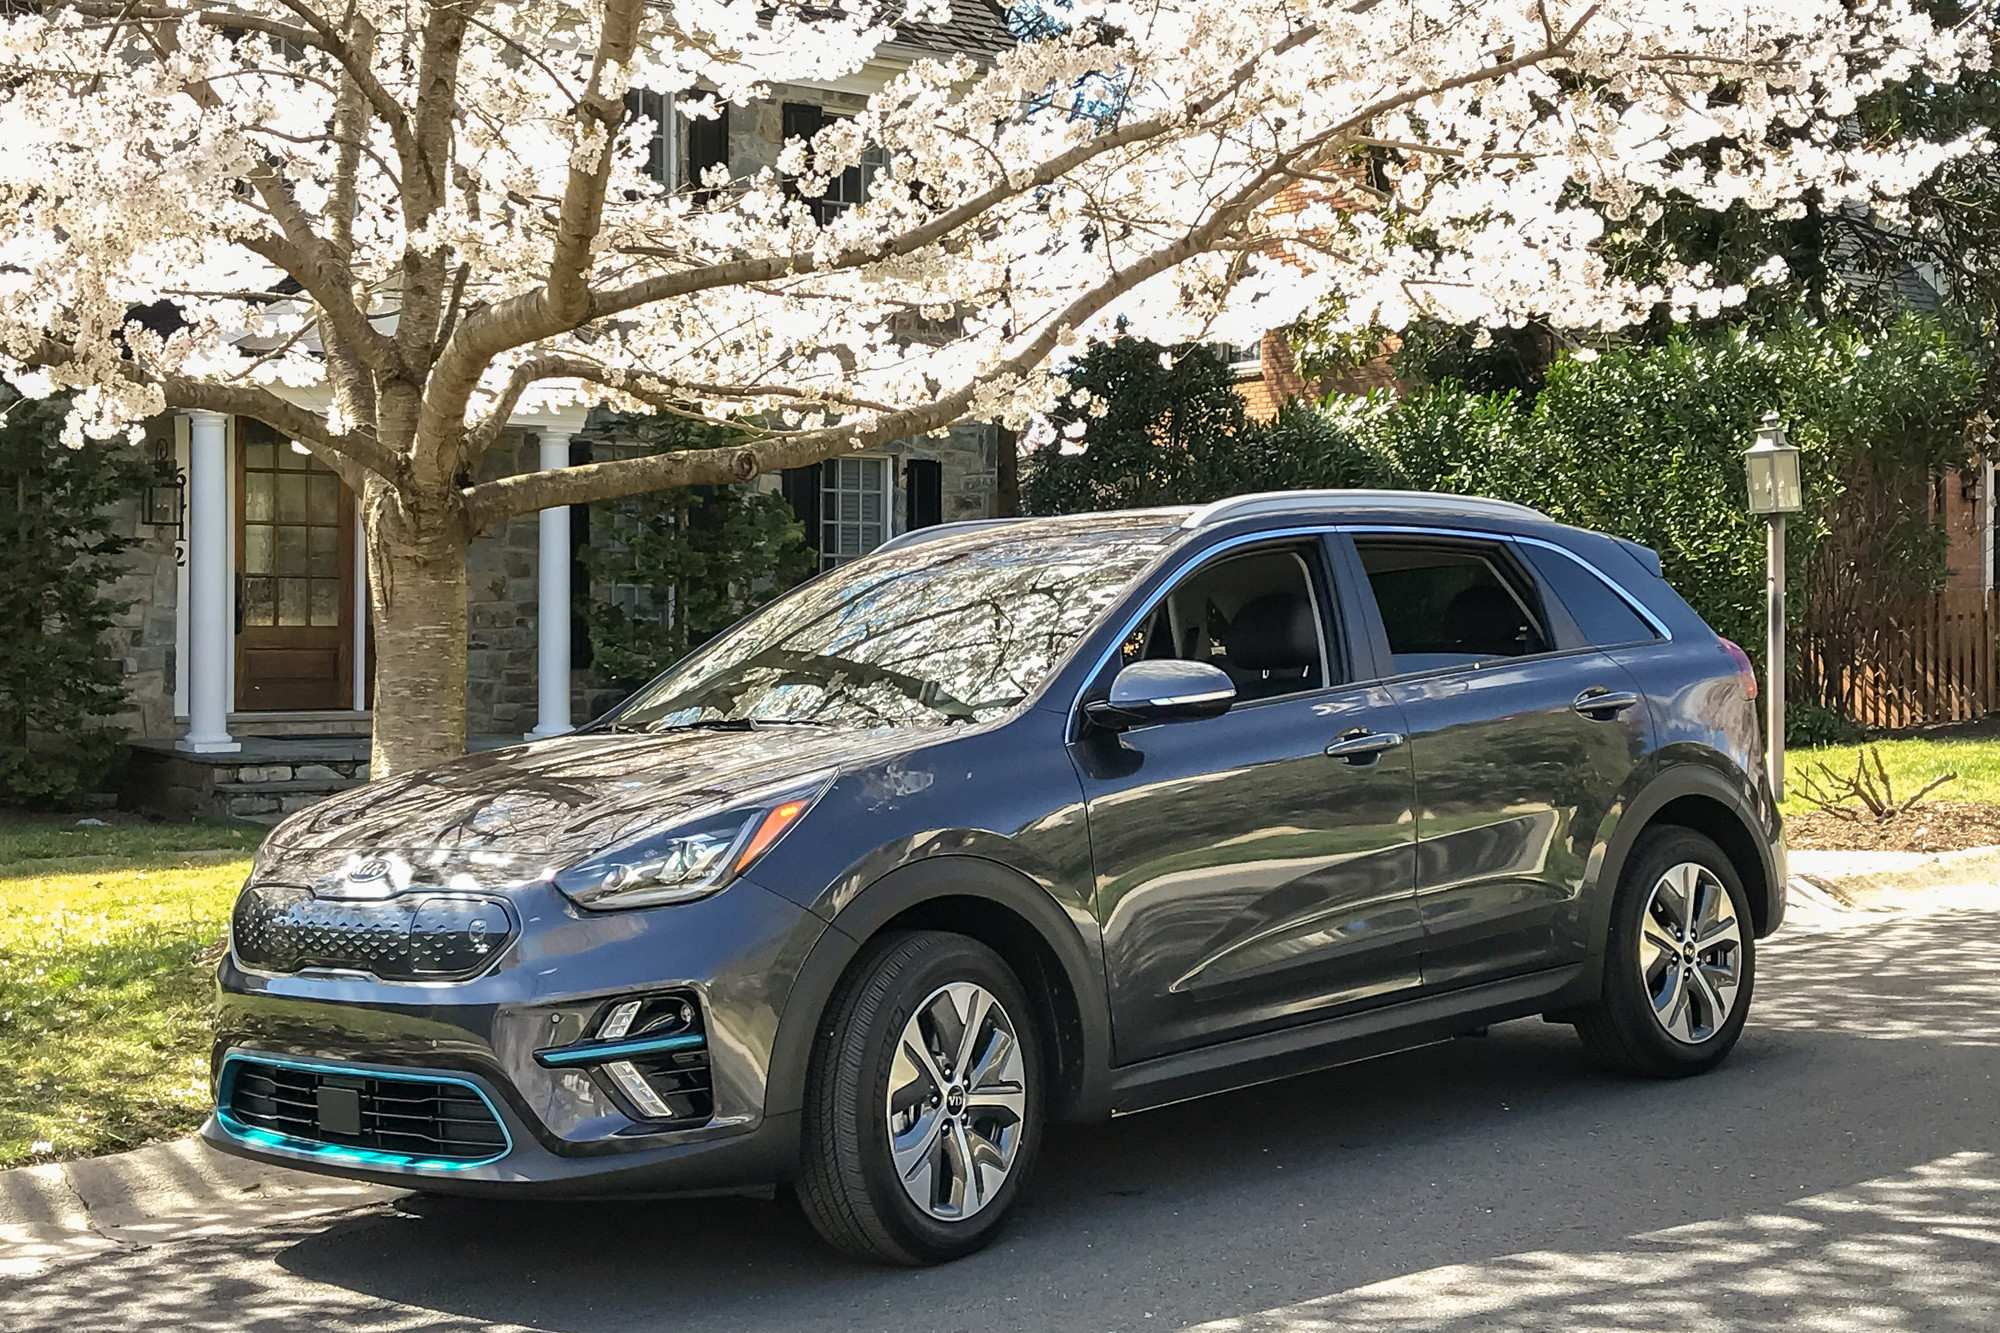 59 The Best 2019 Kia Niro Ev Release Date Price And Review